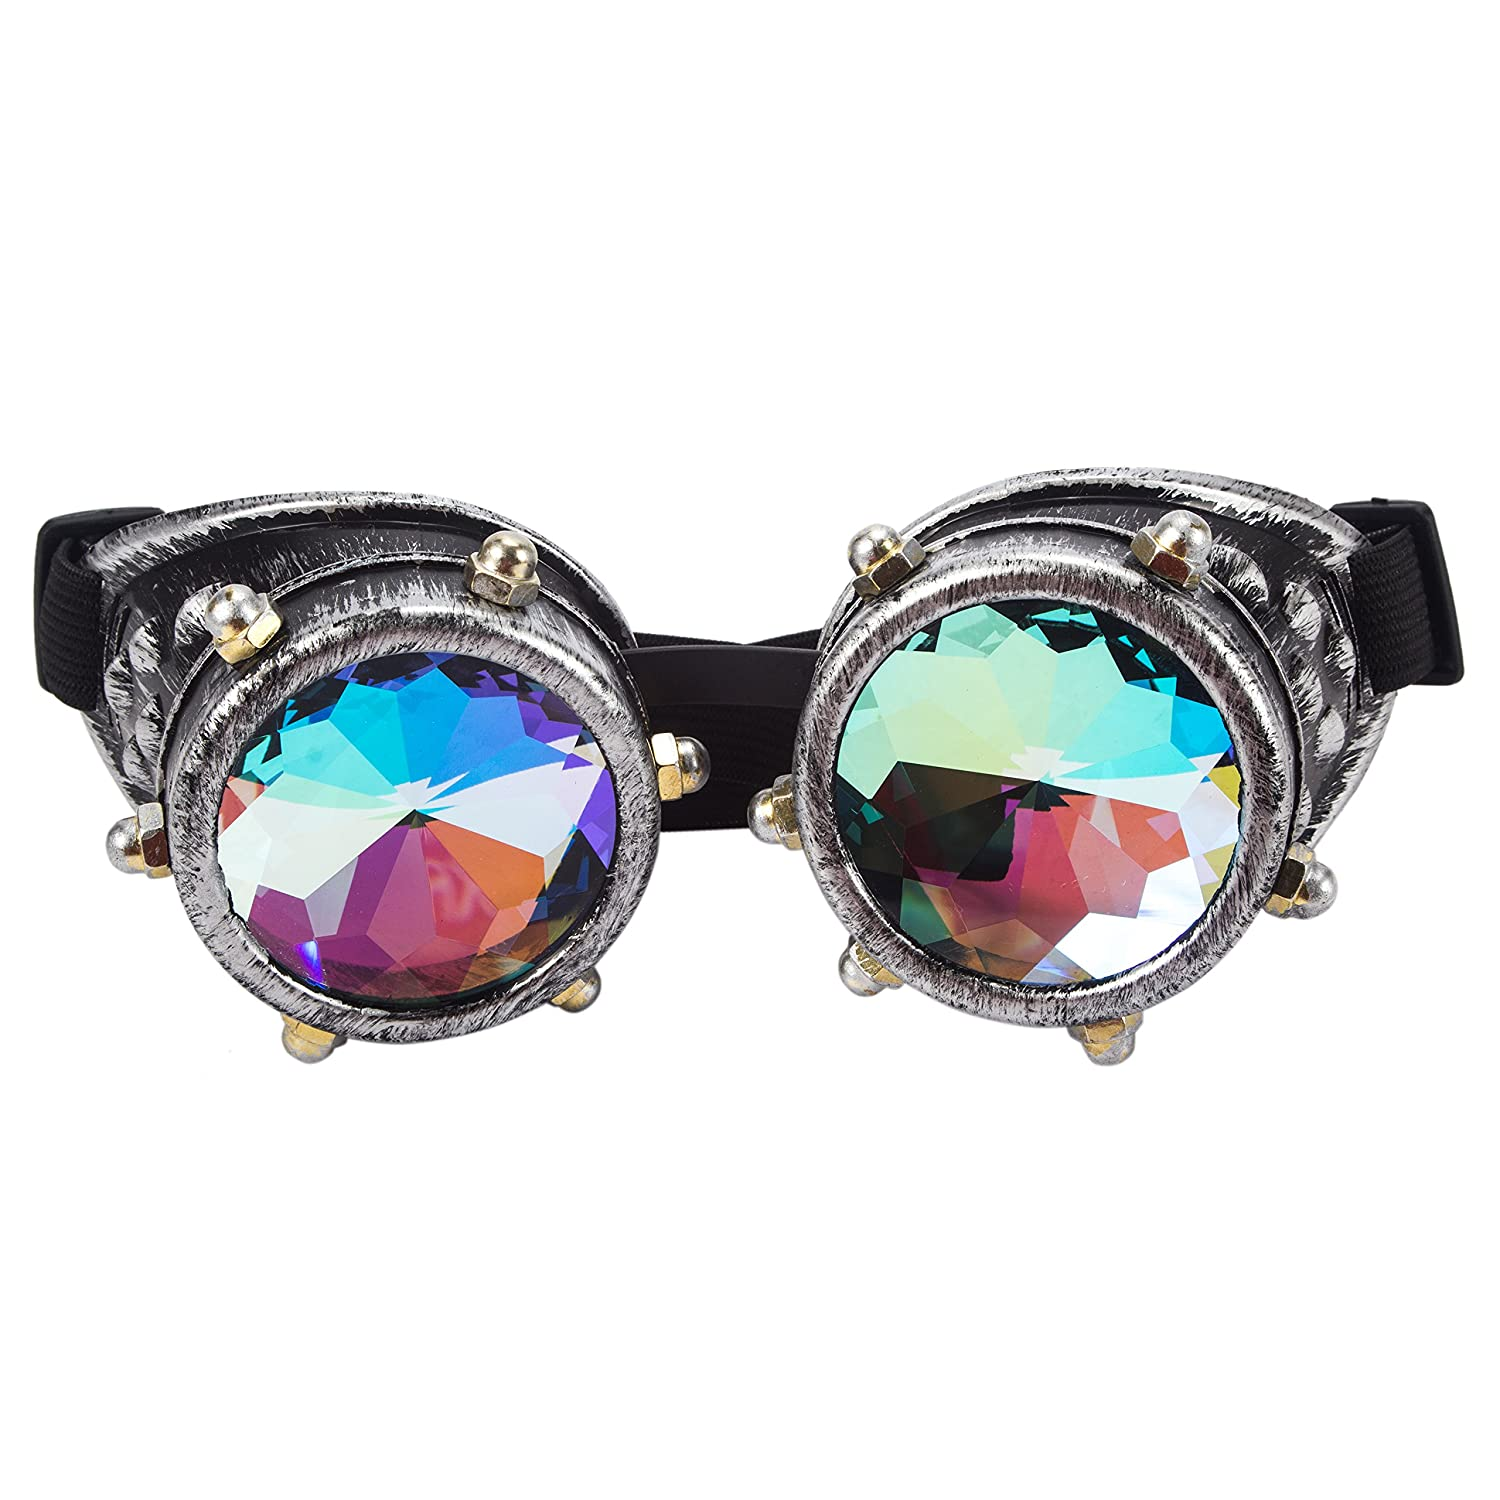 OMG/_Shop Kaleidoscope Glasses Rainbow Rave Steampunk Glasses Carnival Party